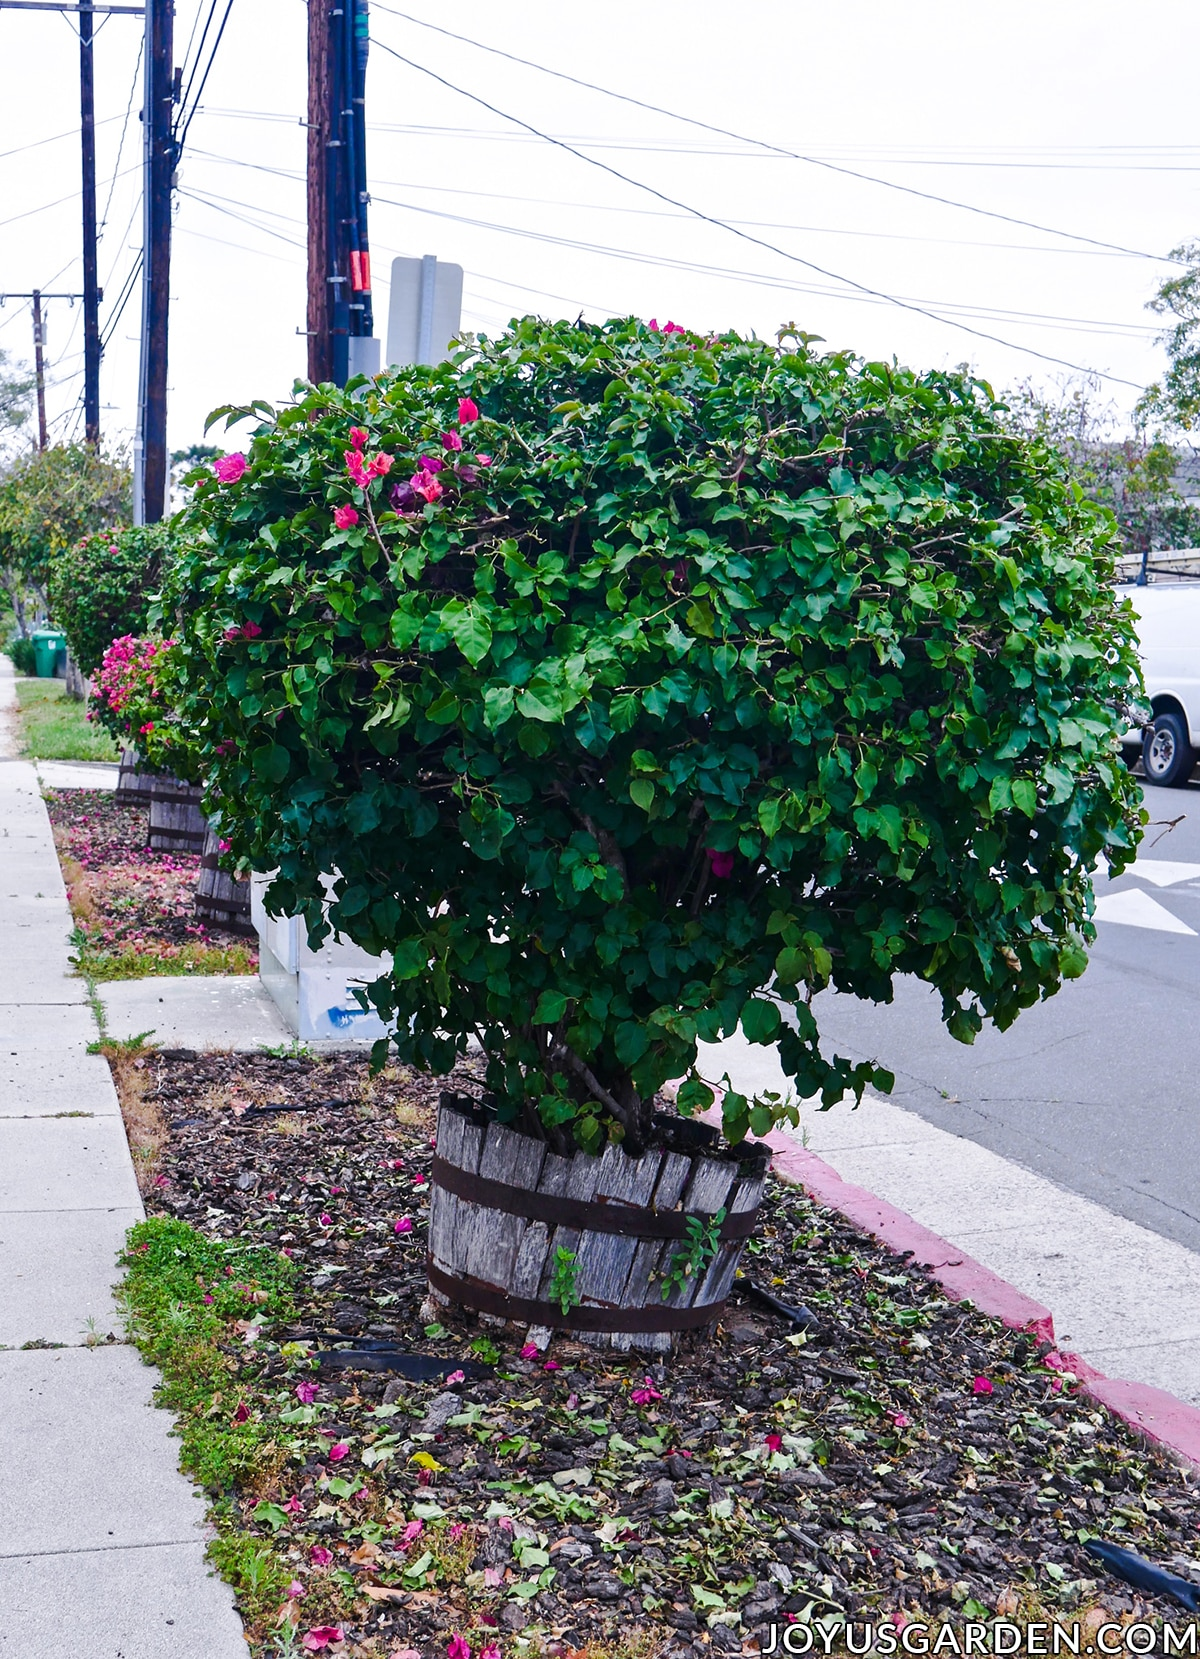 medium sized bougainvilleas pruned into a round blob grow in wine barrels which are falling apart